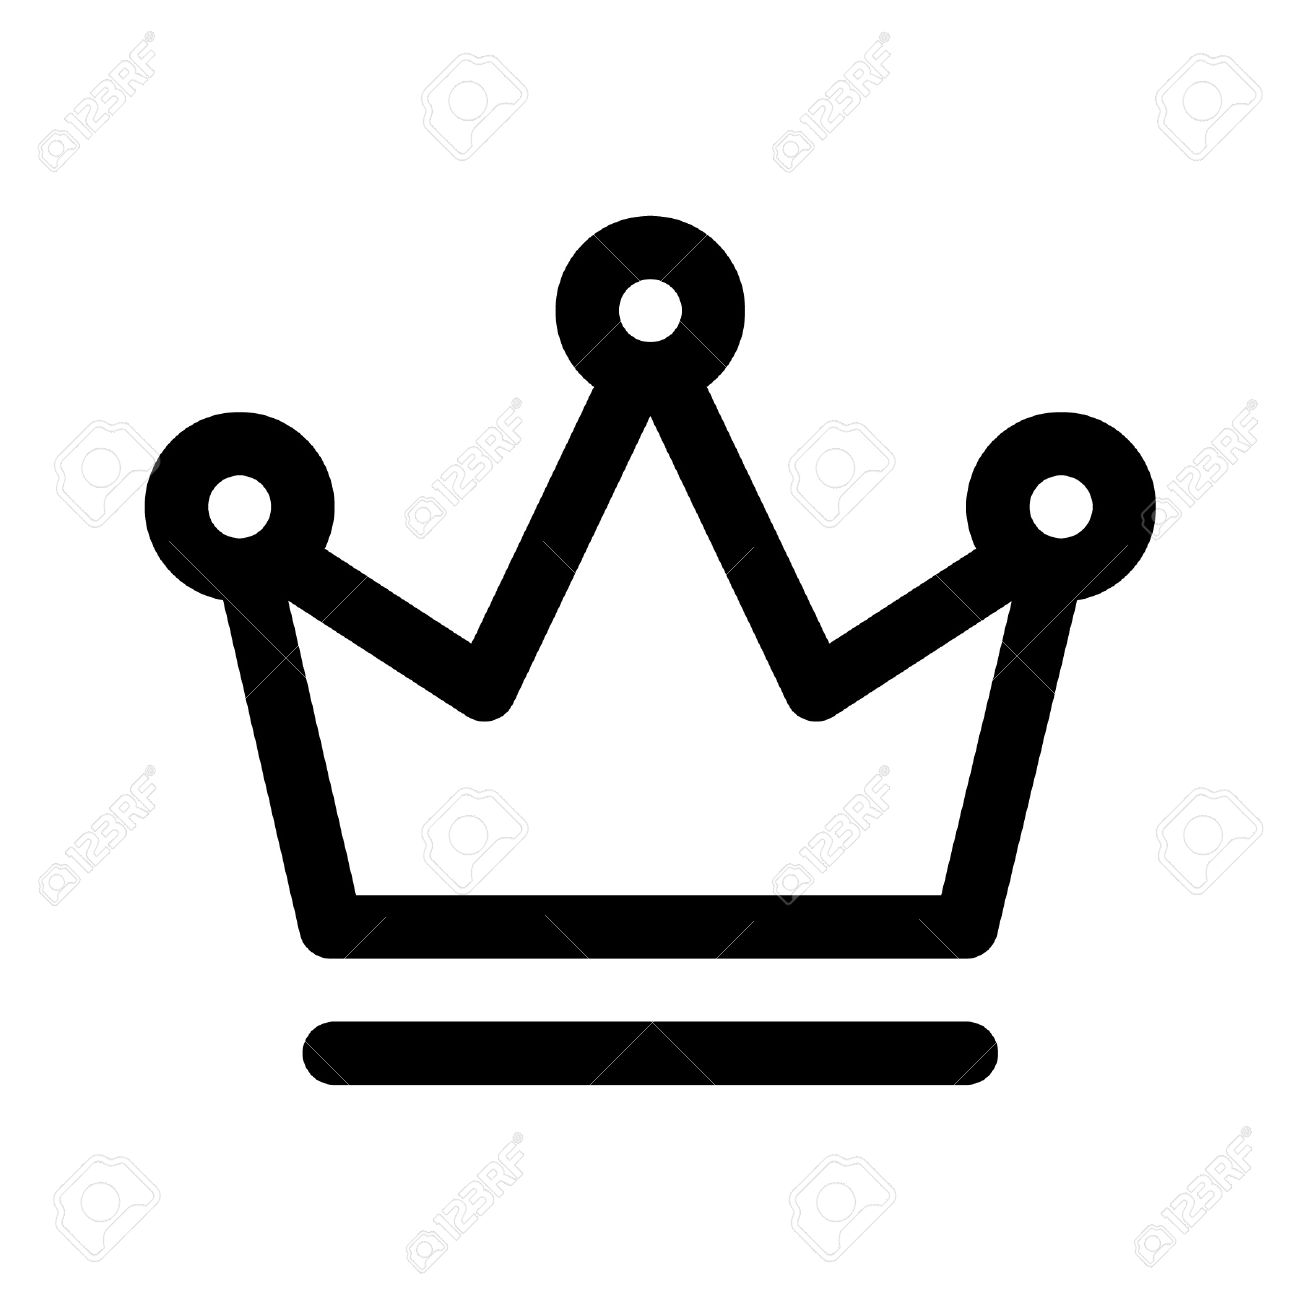 Crown Of The King Line Art Icon For Apps And Websites Royalty Free.